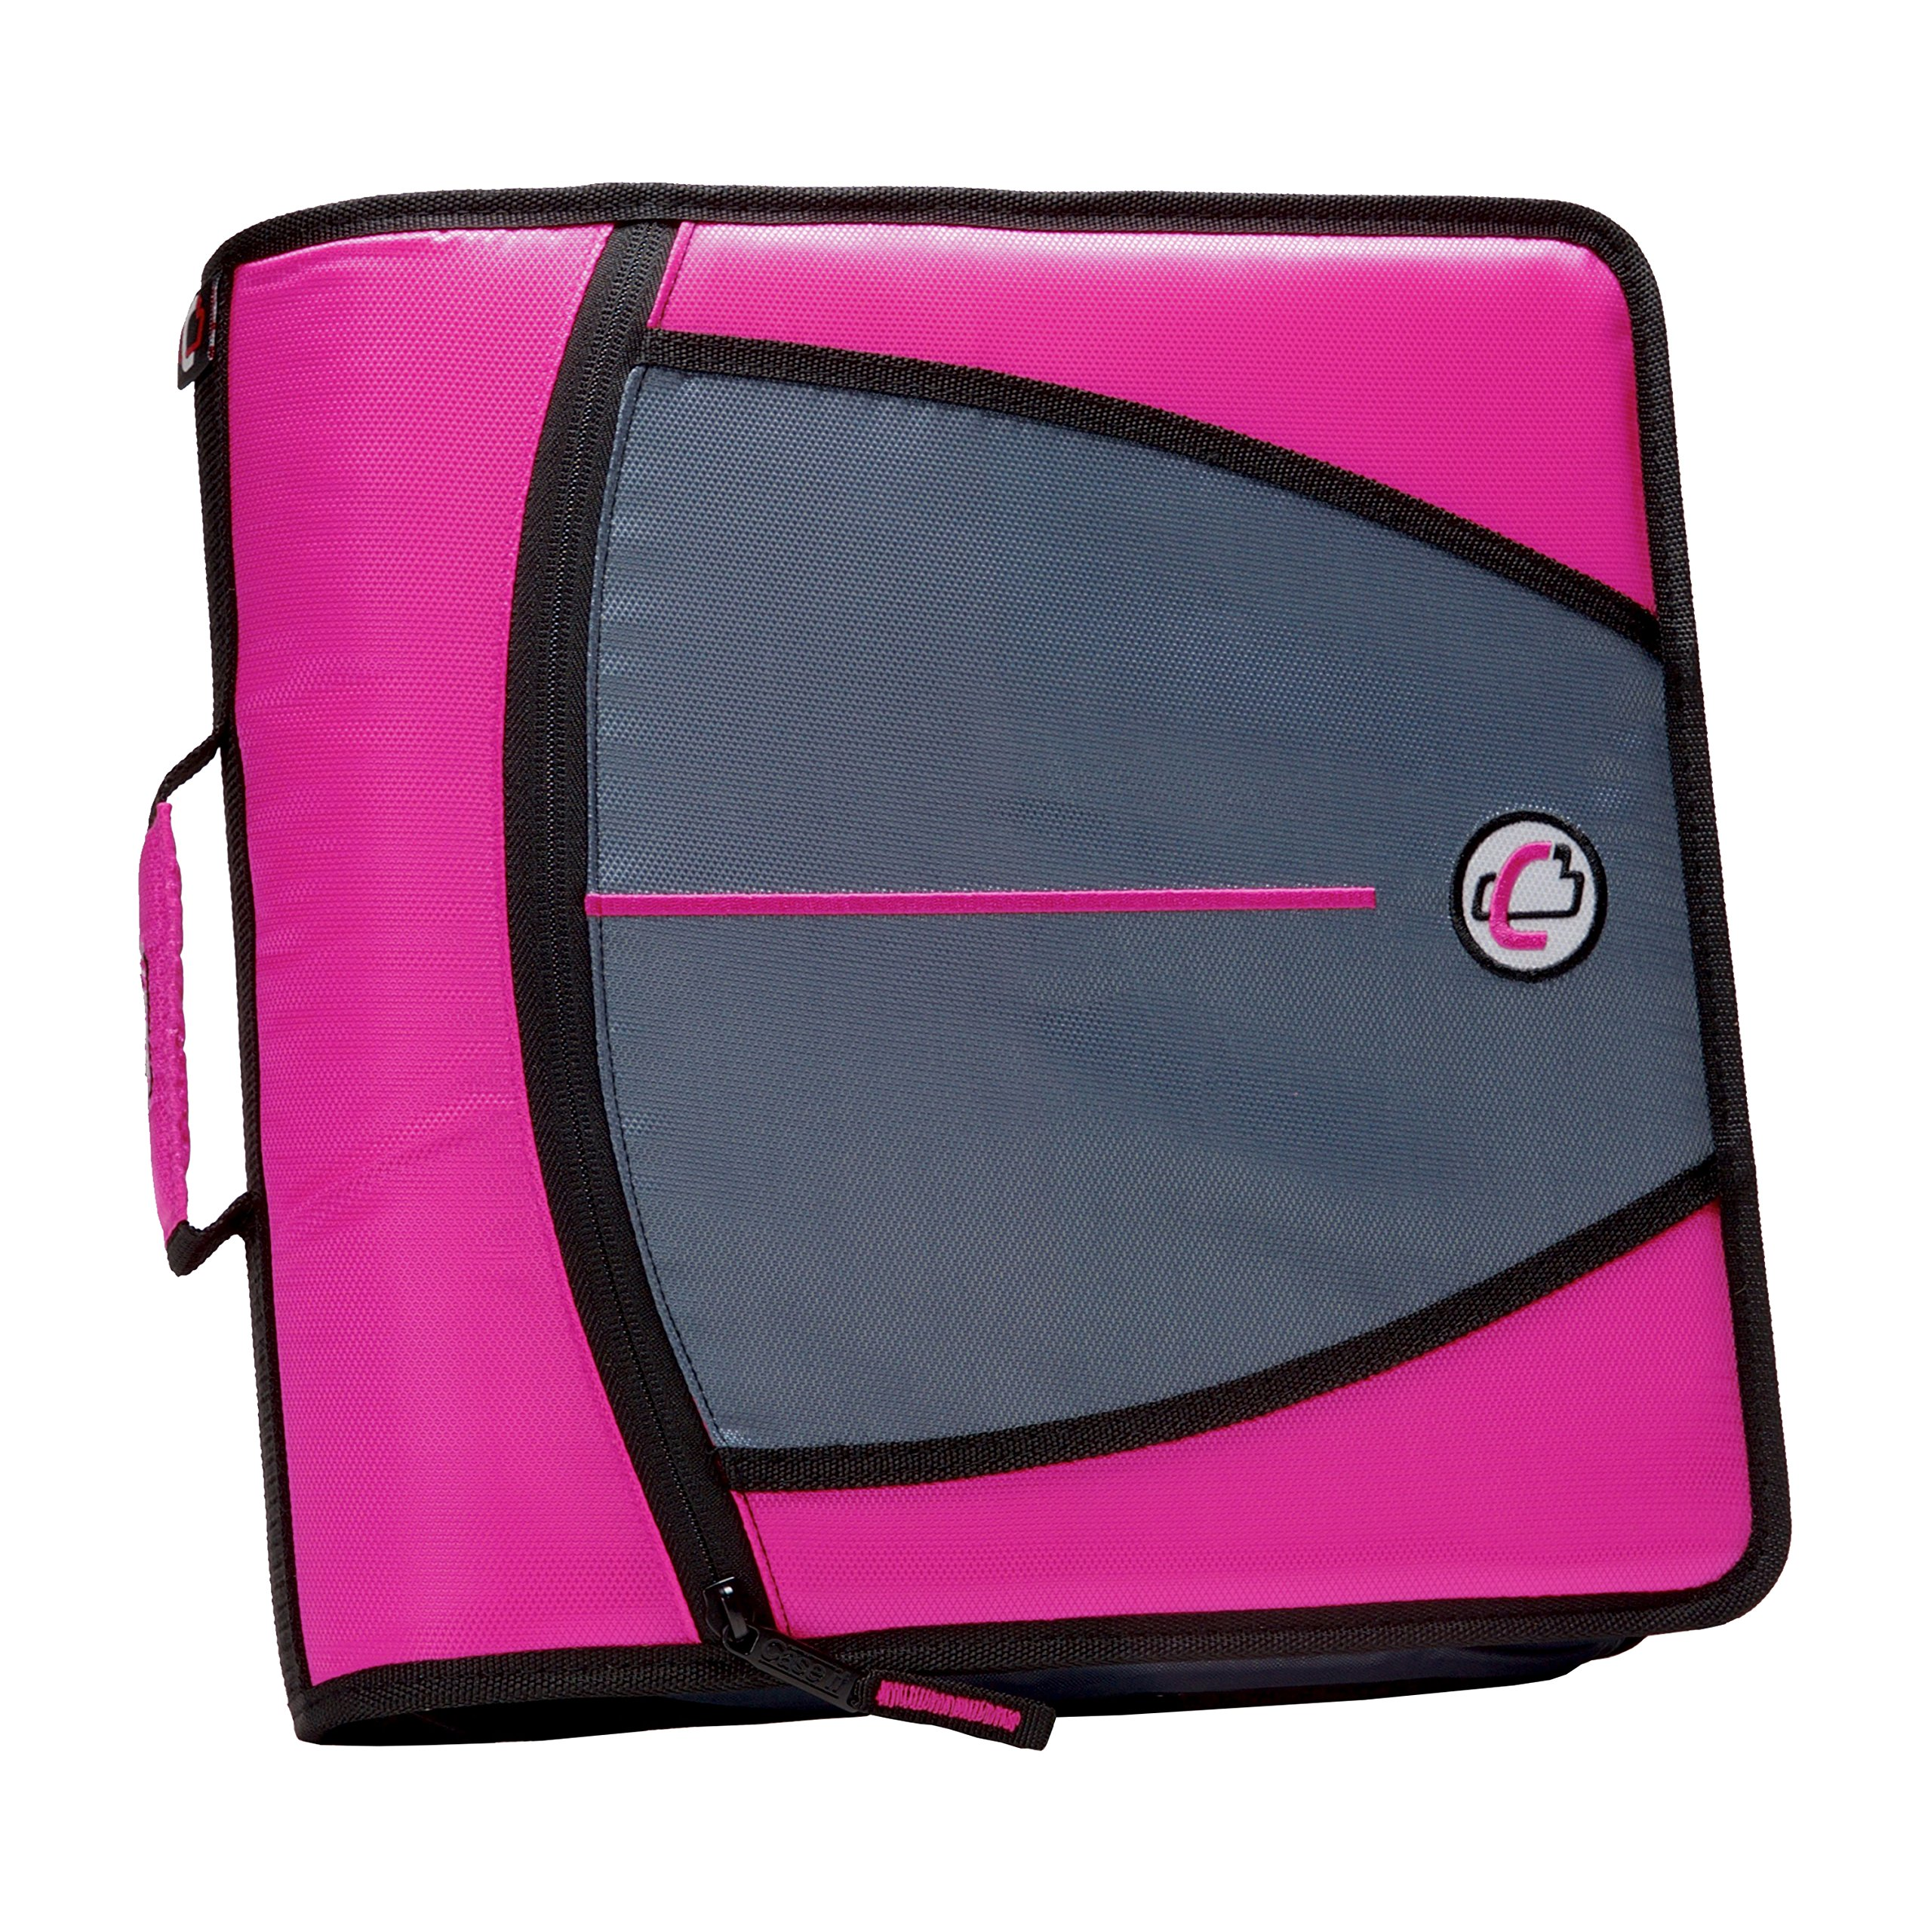 Case-it Mighty Zip Tab 3-Inch Zipper Binder, Magenta, D-146-MAG by Case it